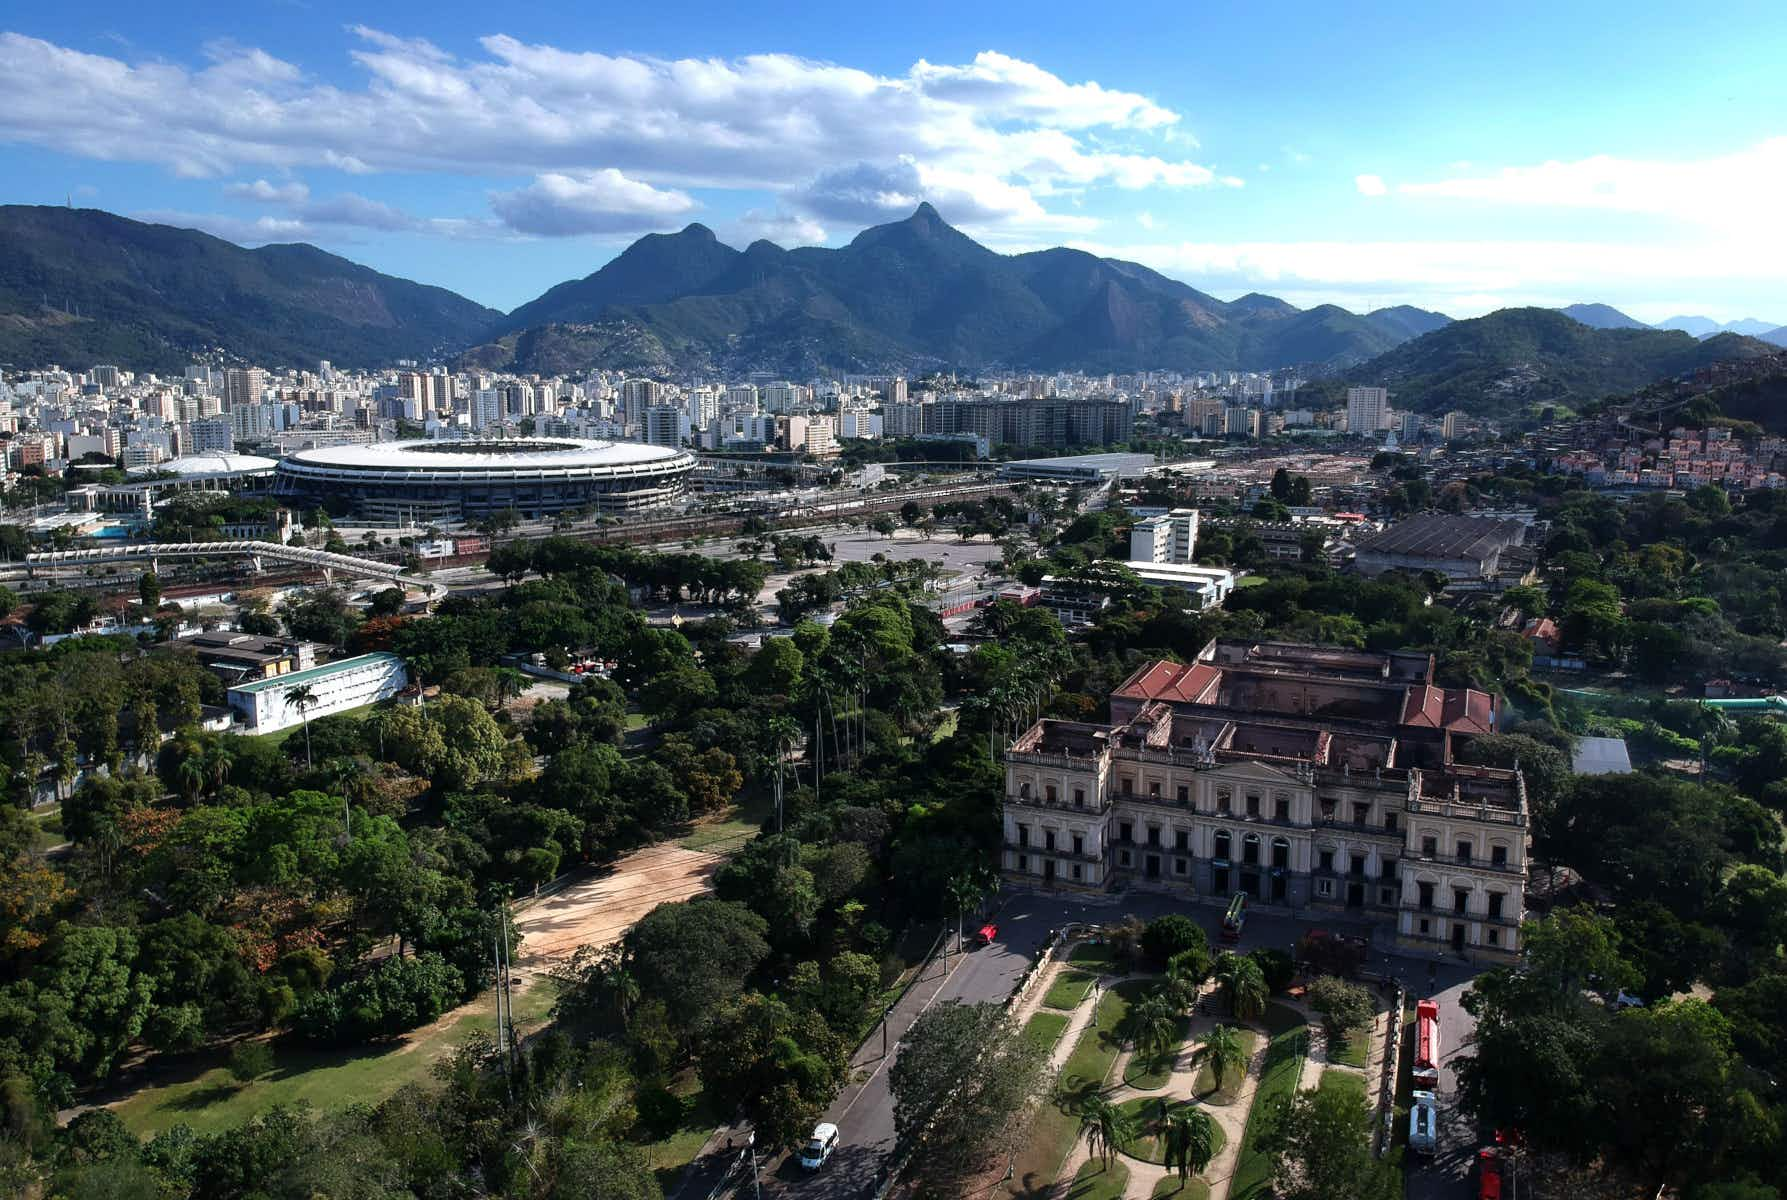 Brazil's National Museum gets a second life online thanks to Google